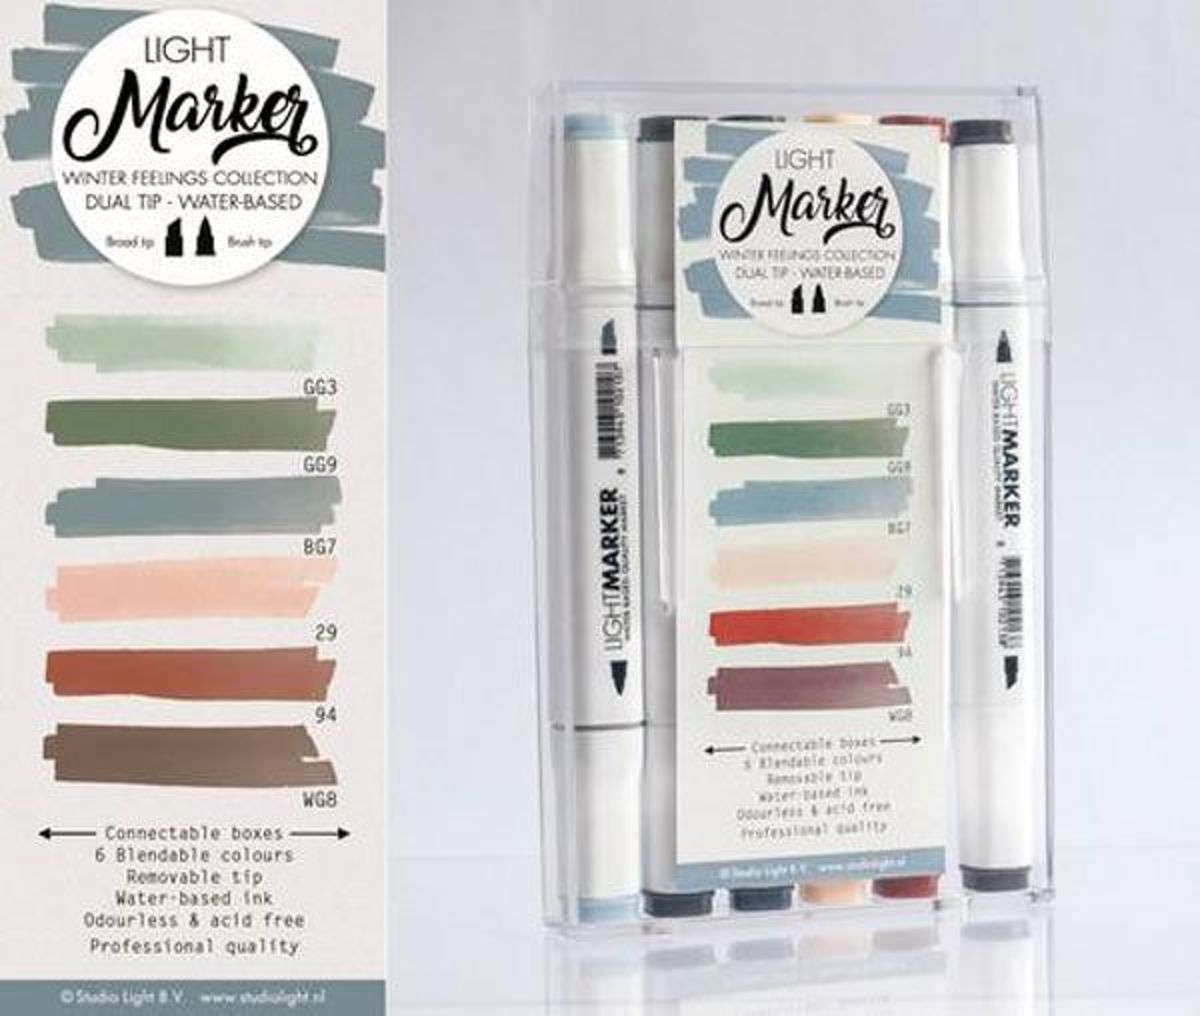 Winter Feelings - Box 6 water based dual tip markers bright